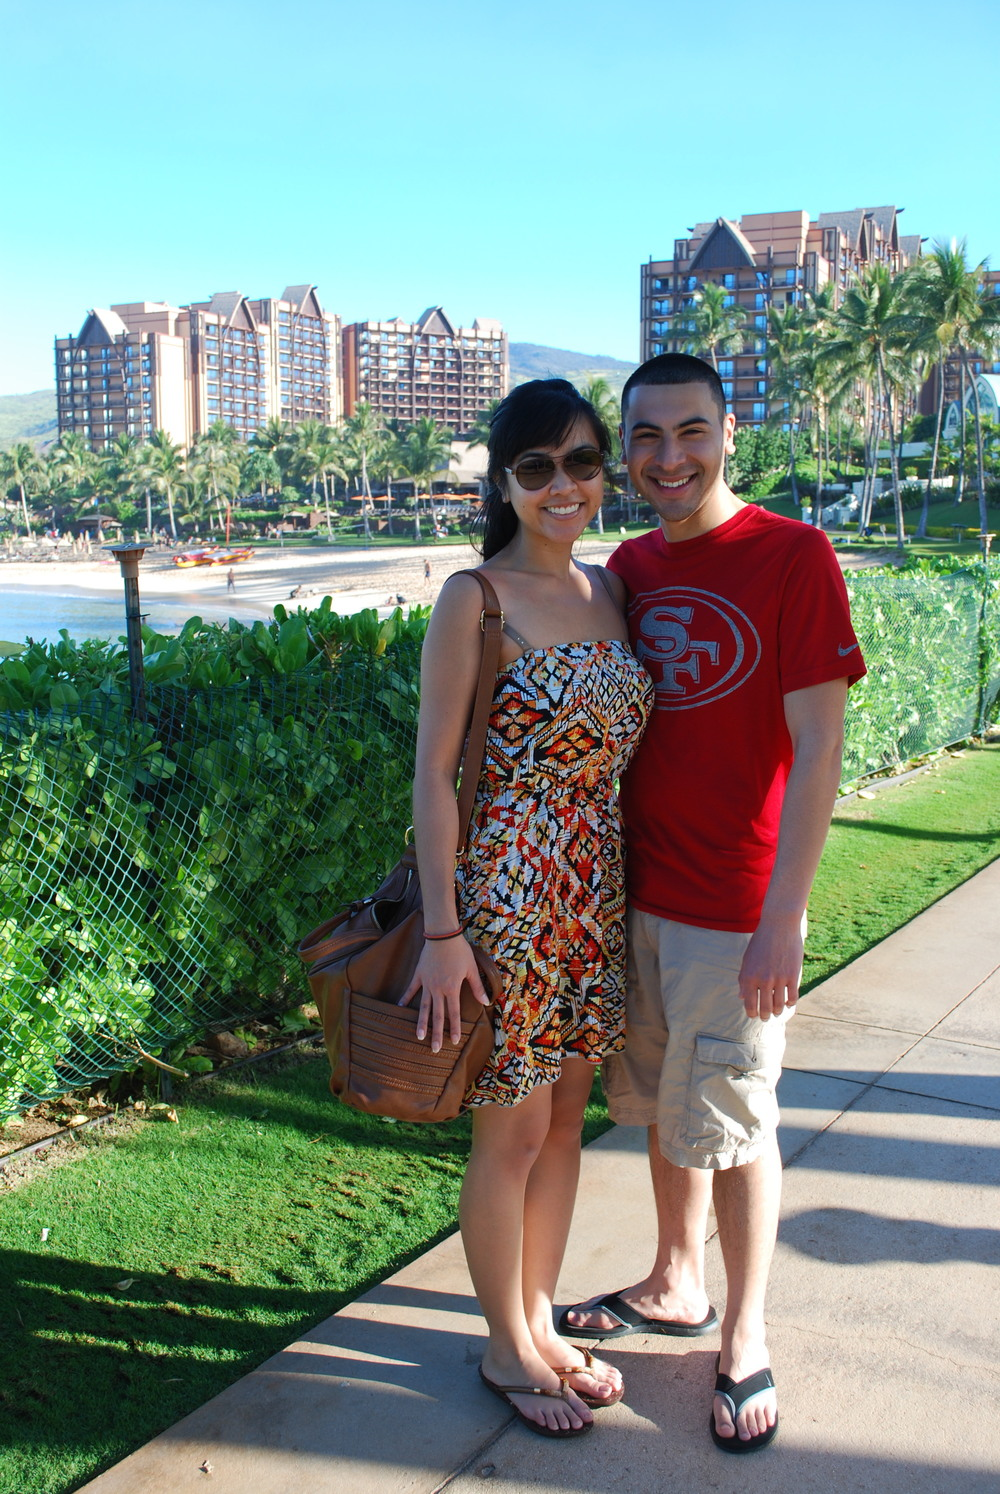 Ko Olina Resort, Oahu | Melvin and I on our way to the Aulani Disney Resort for breakfast.